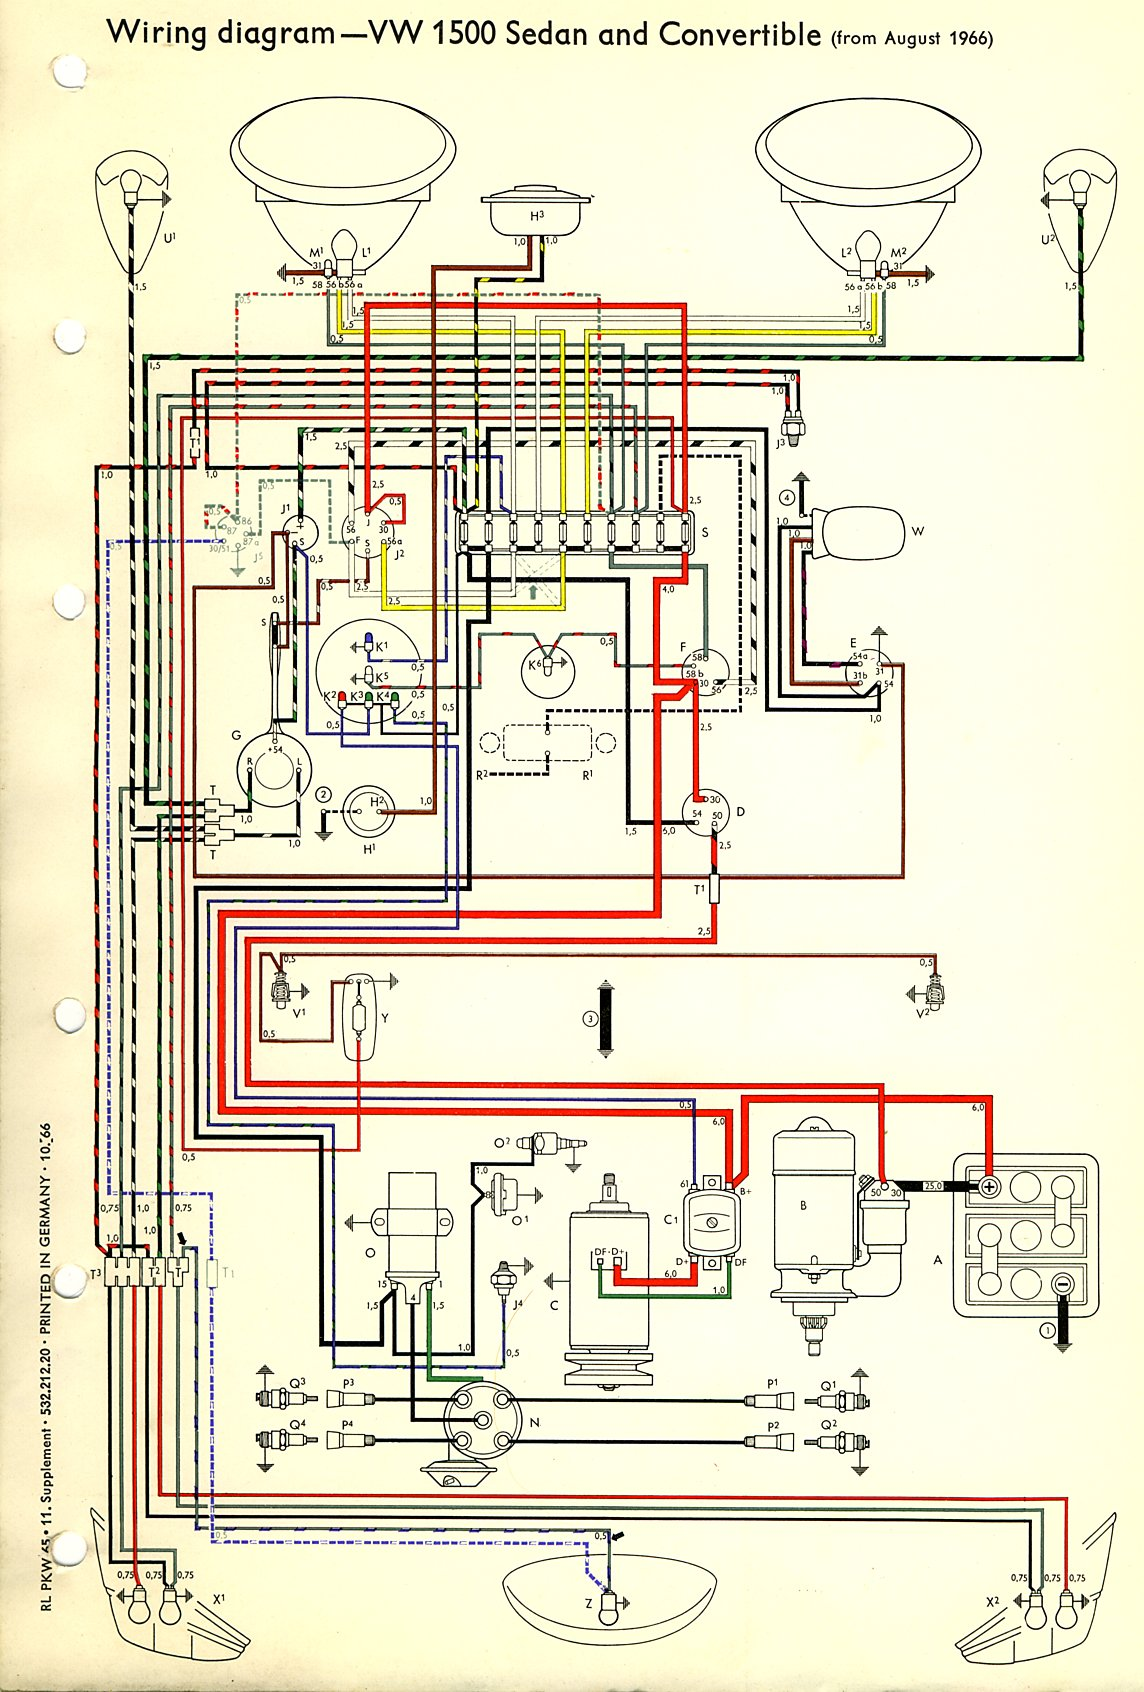 1967 vw wiring diagrams - wiring diagrams site huge-private-a -  huge-private-a.geasparquet.it  geas parquet